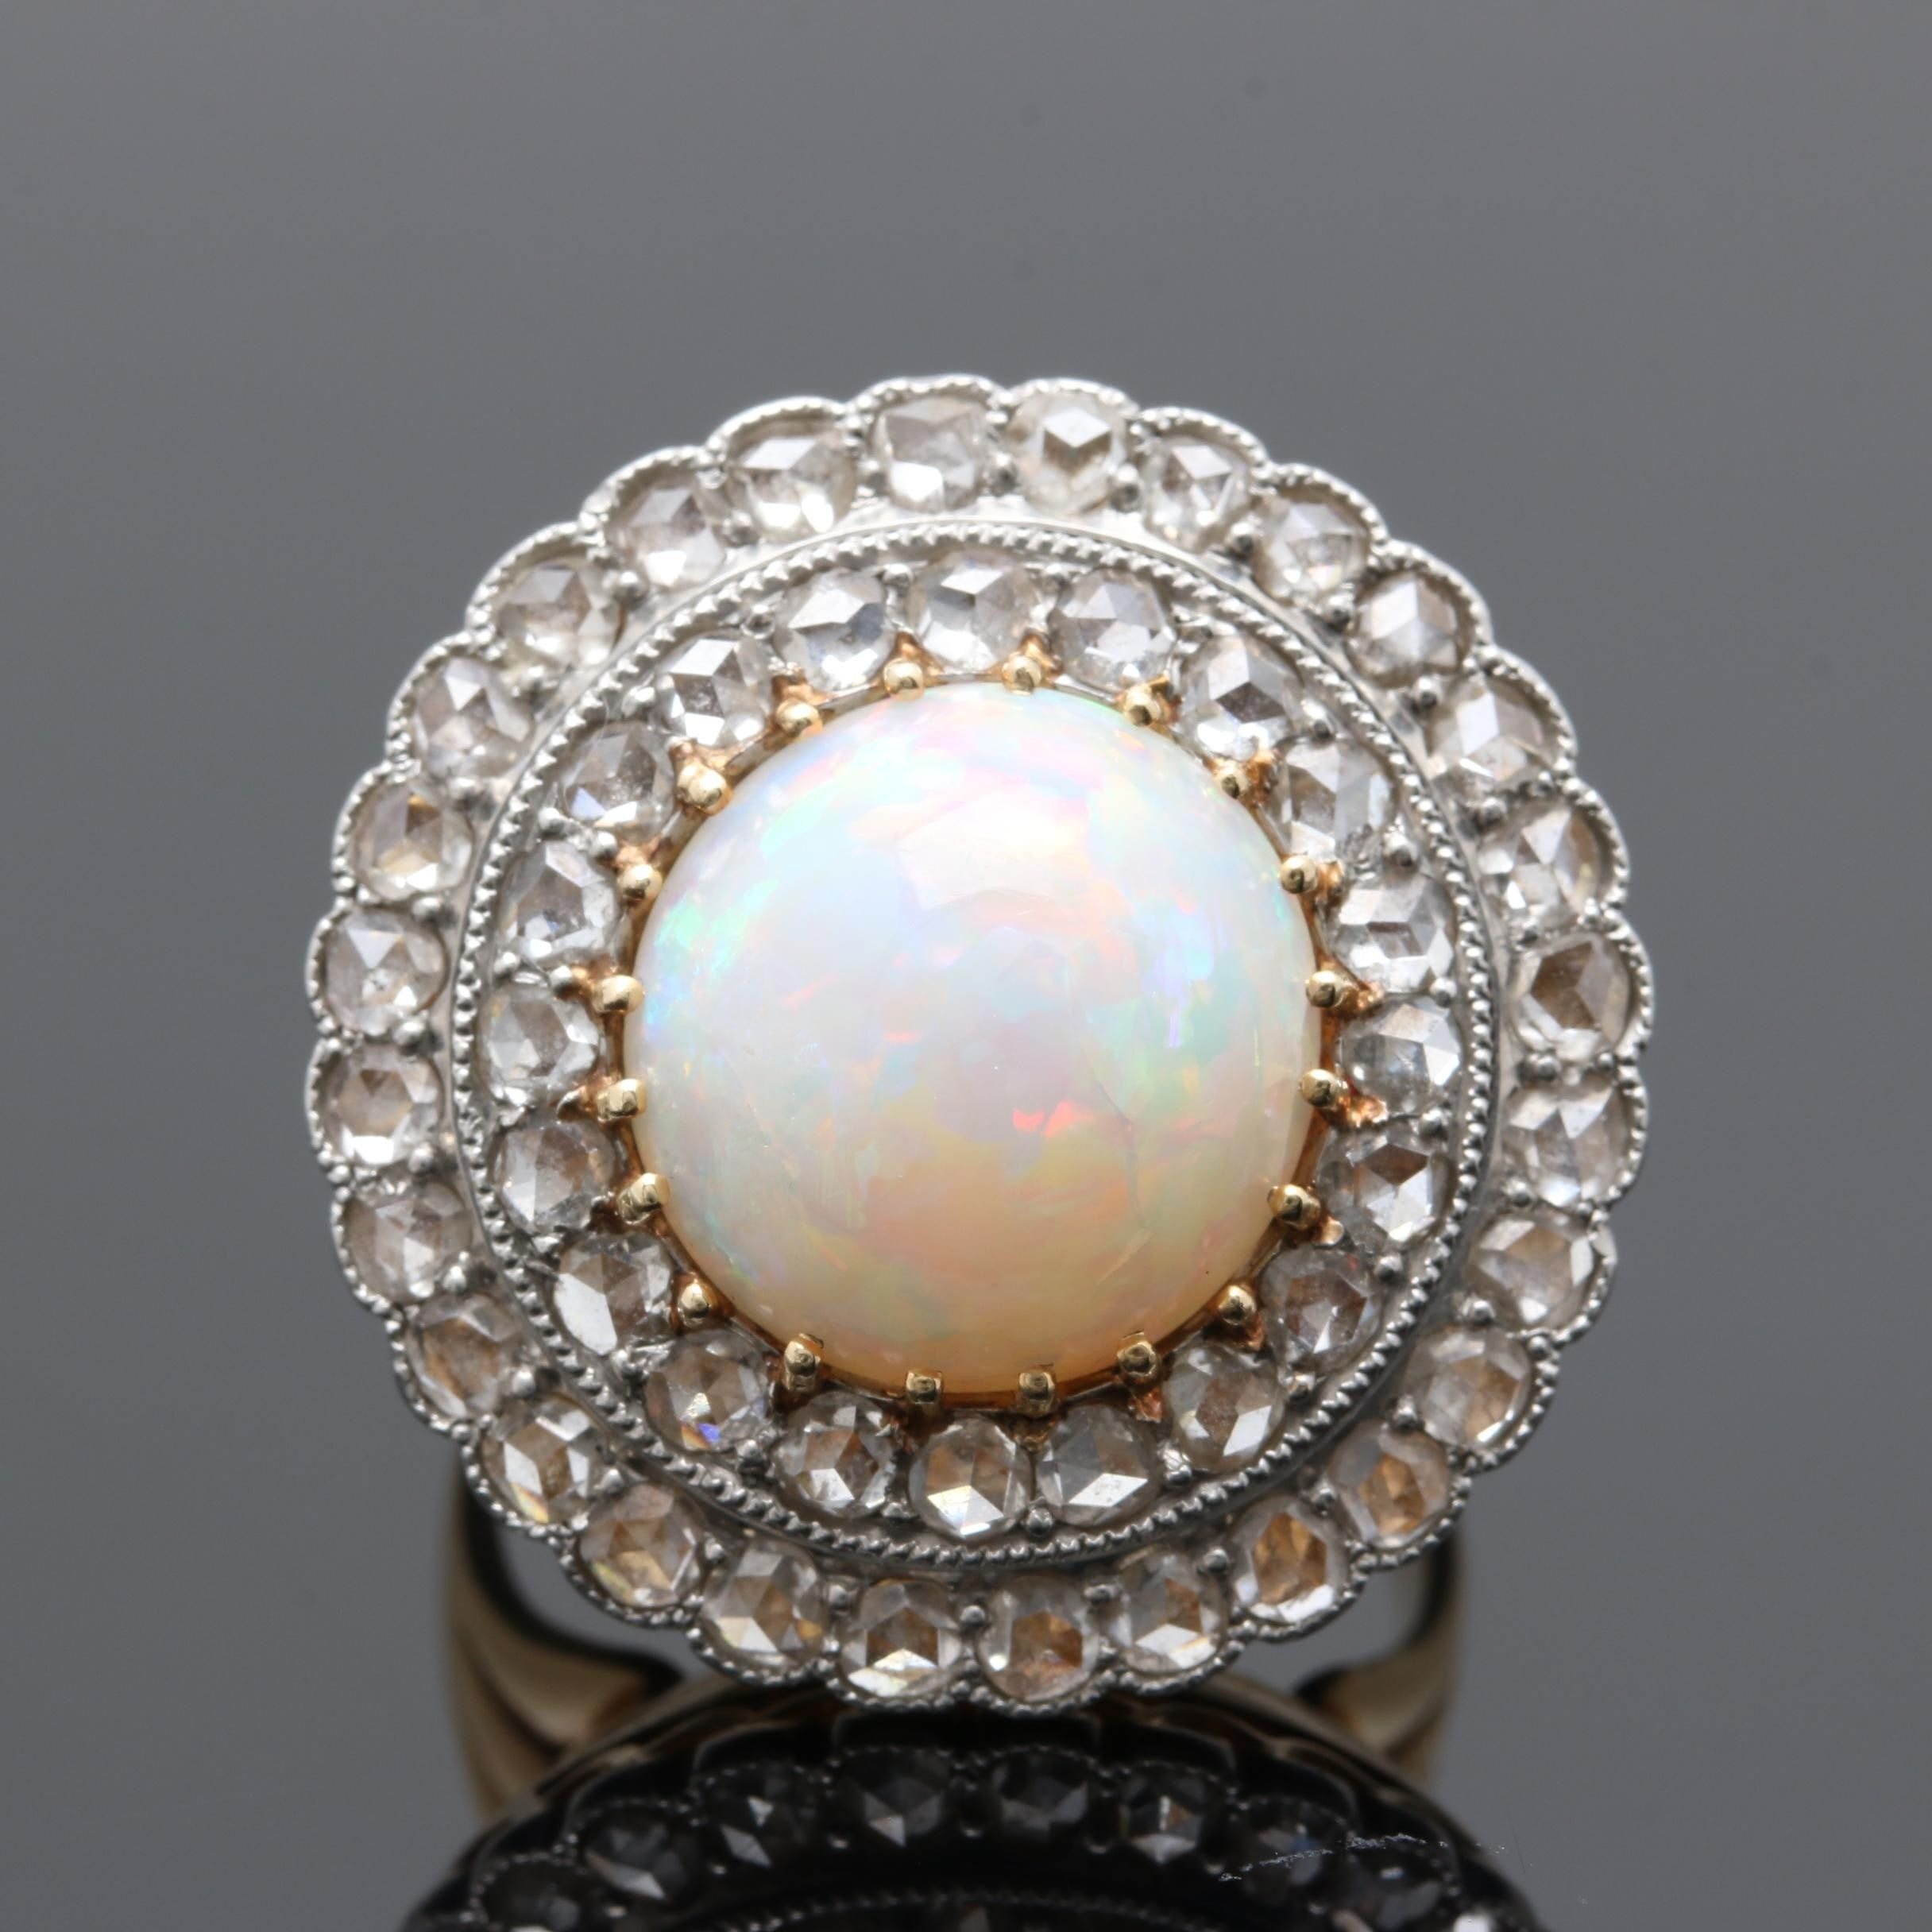 14K Yellow Gold and Platinum Opal and Diamond Ring